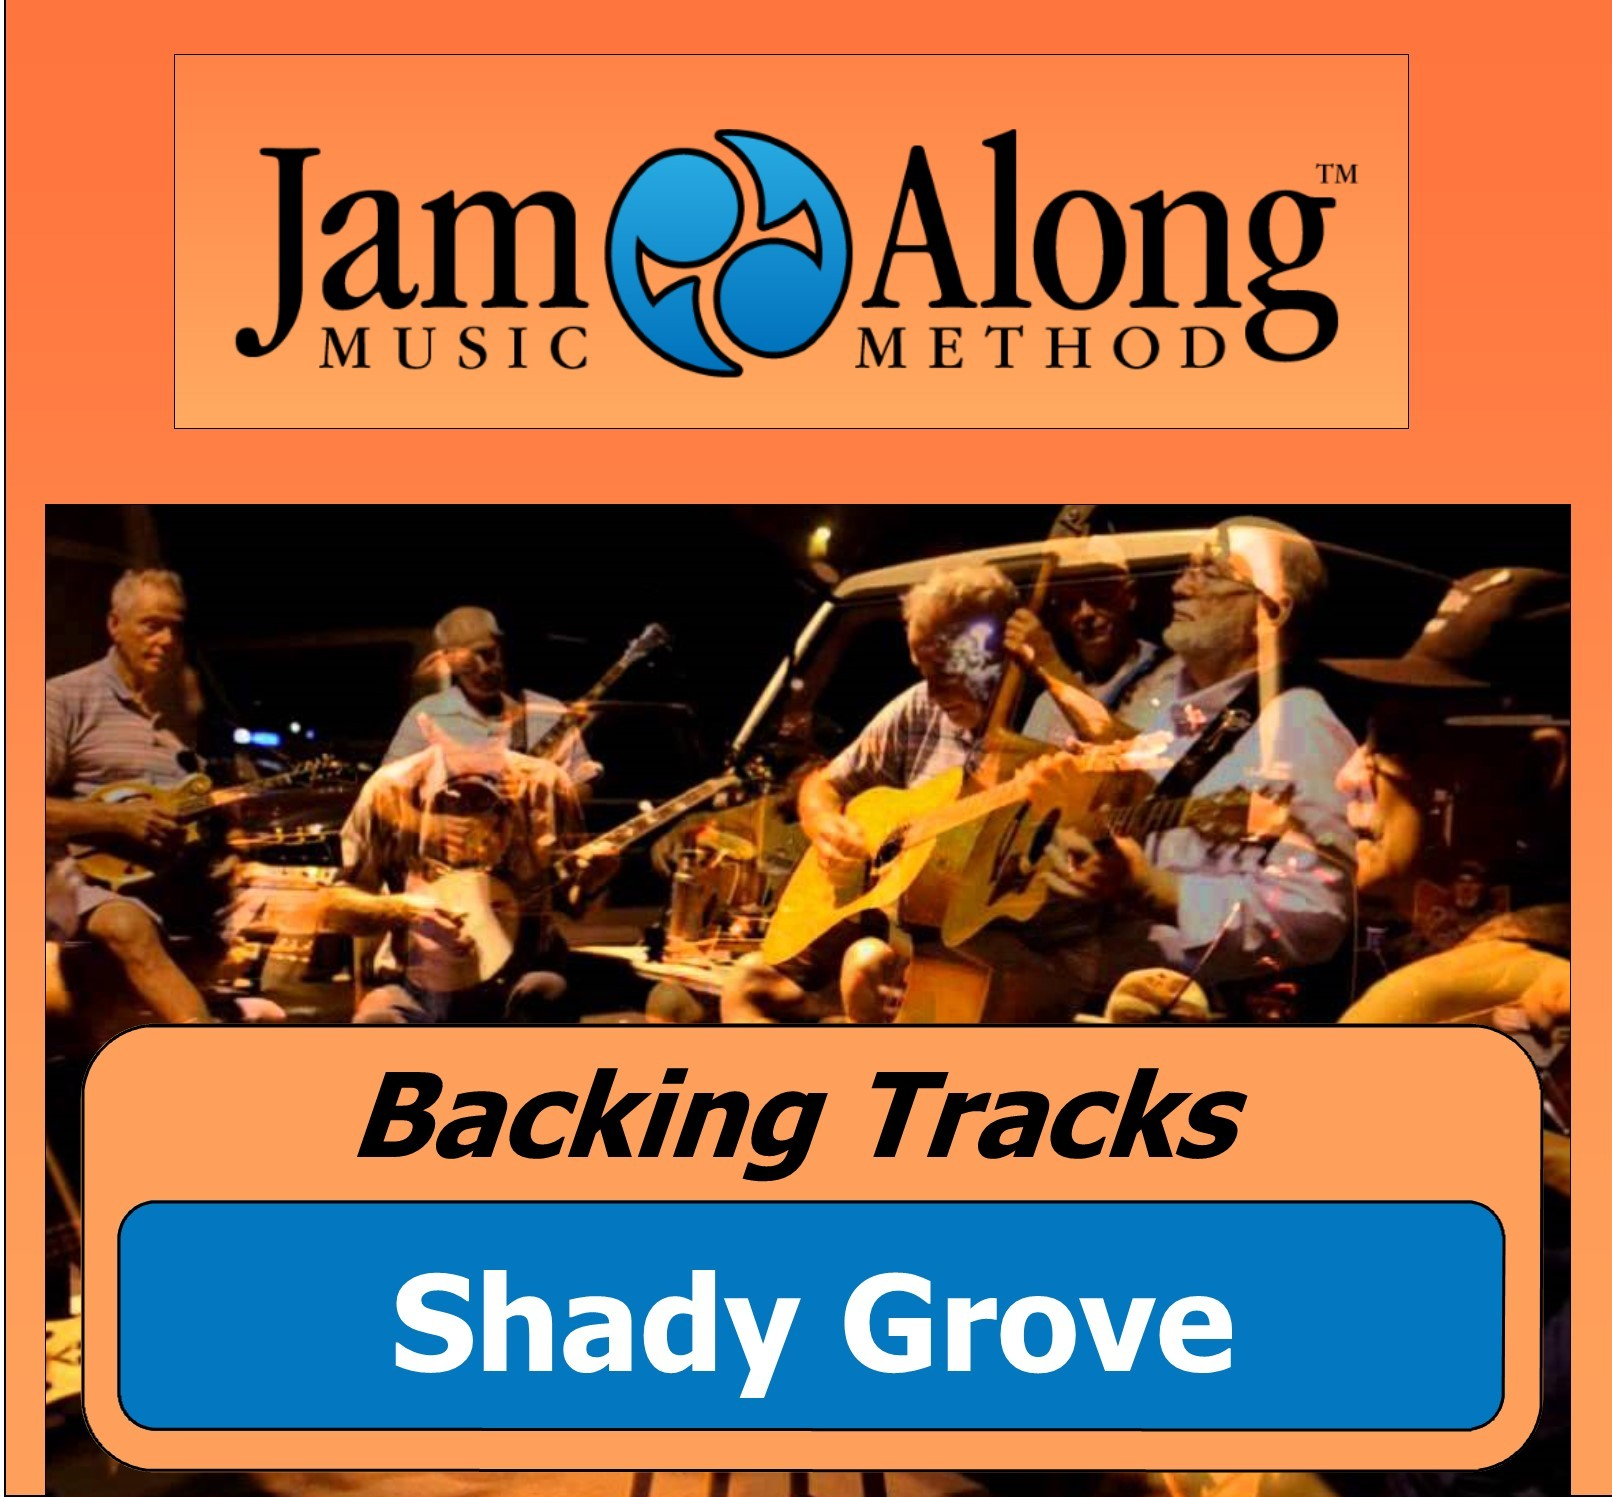 Shady grove backing tracks jamalong music method for Shady grove